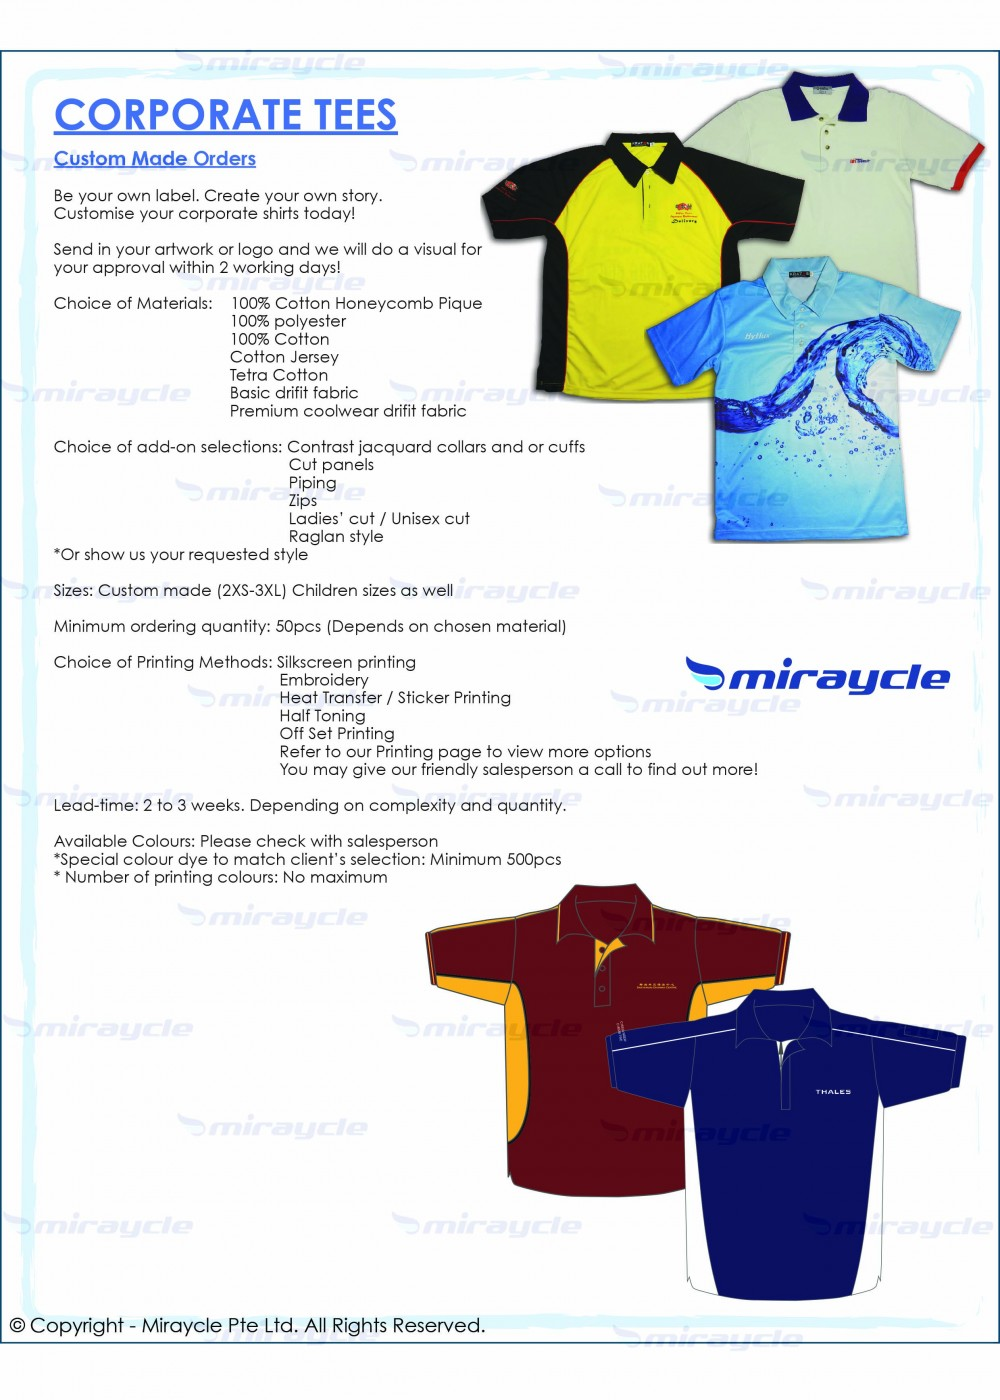 Corporate Tees Brochure